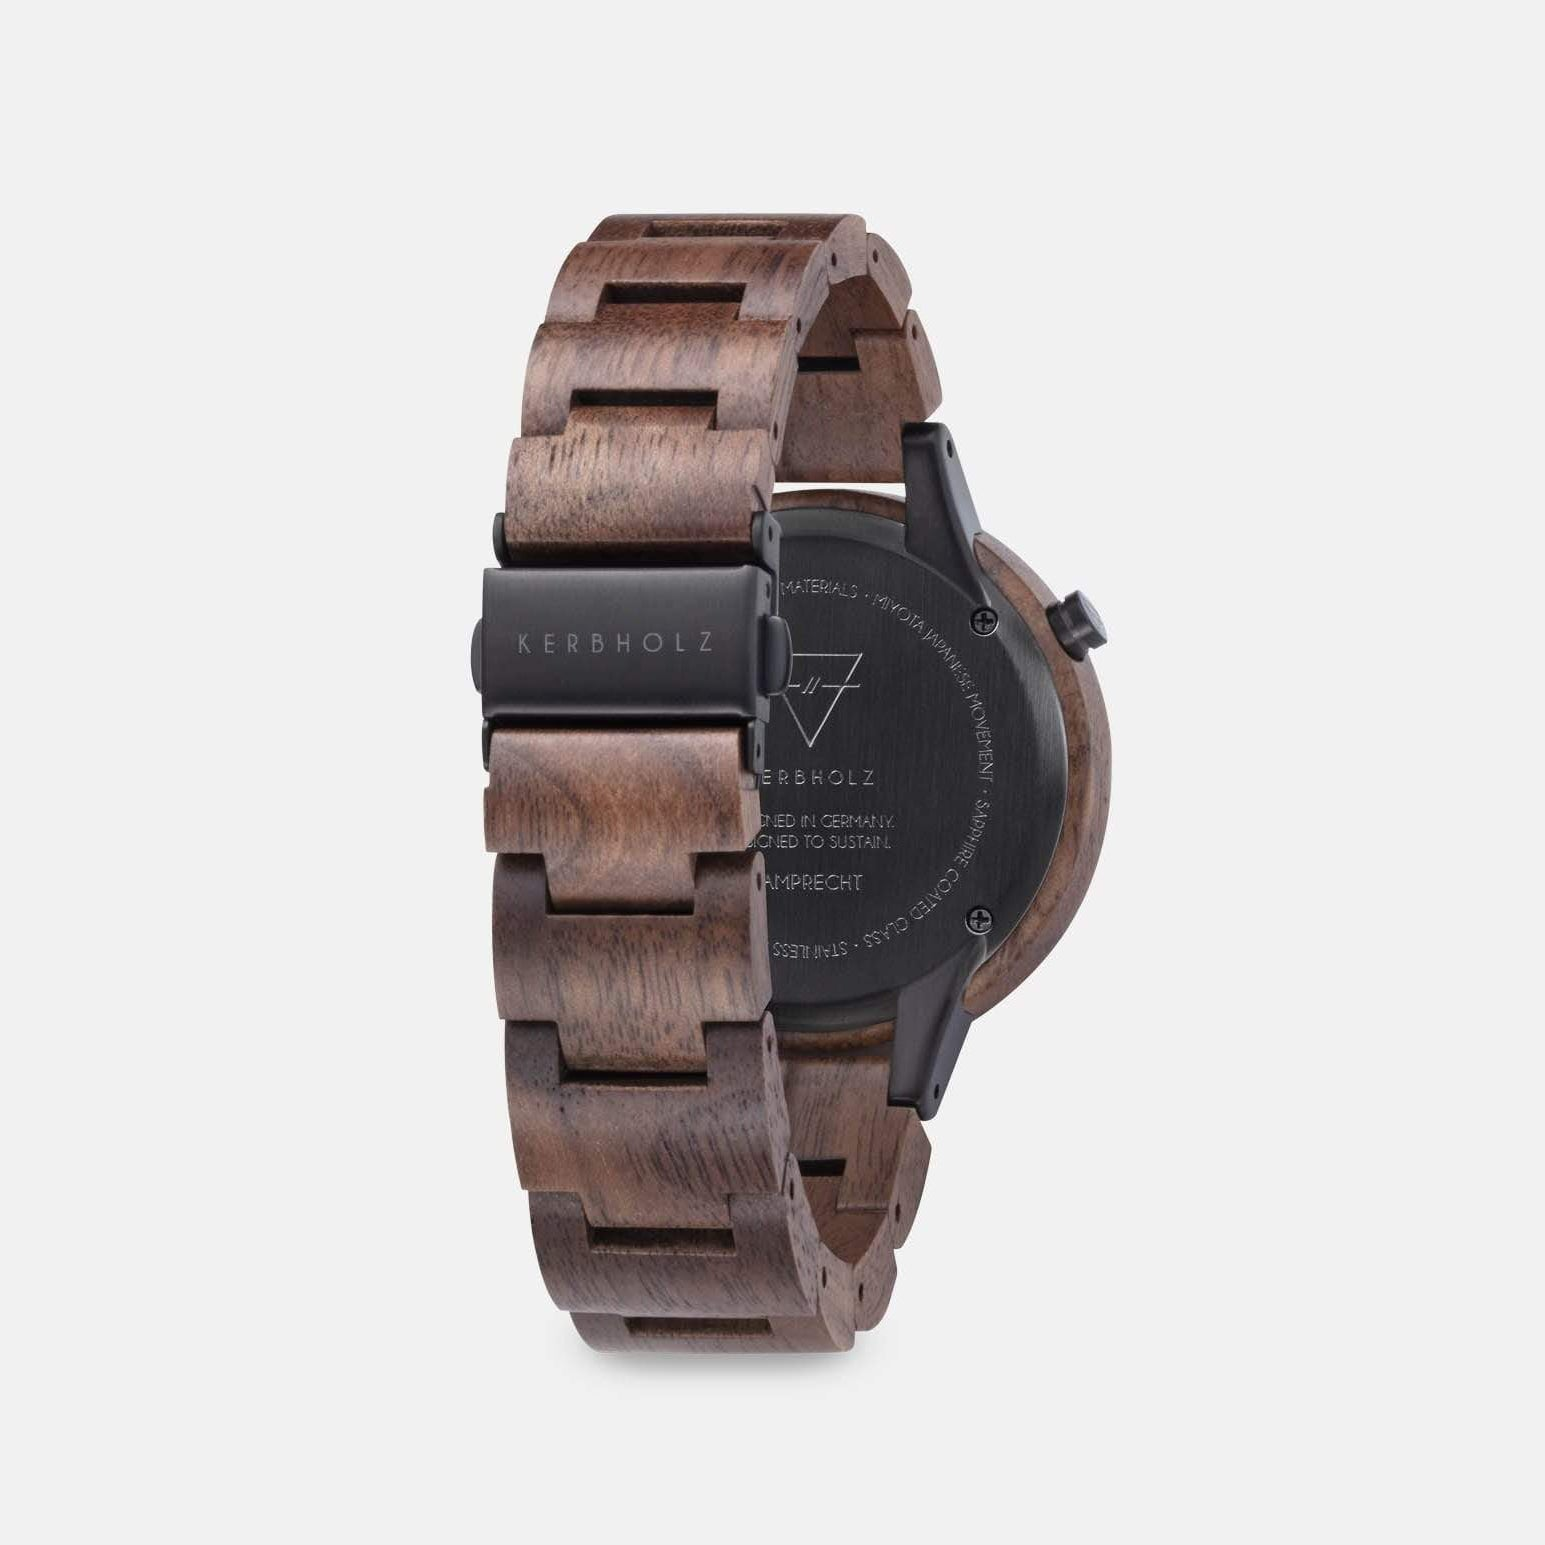 Kerbholz horloge | Lamprecht Walnut Gold